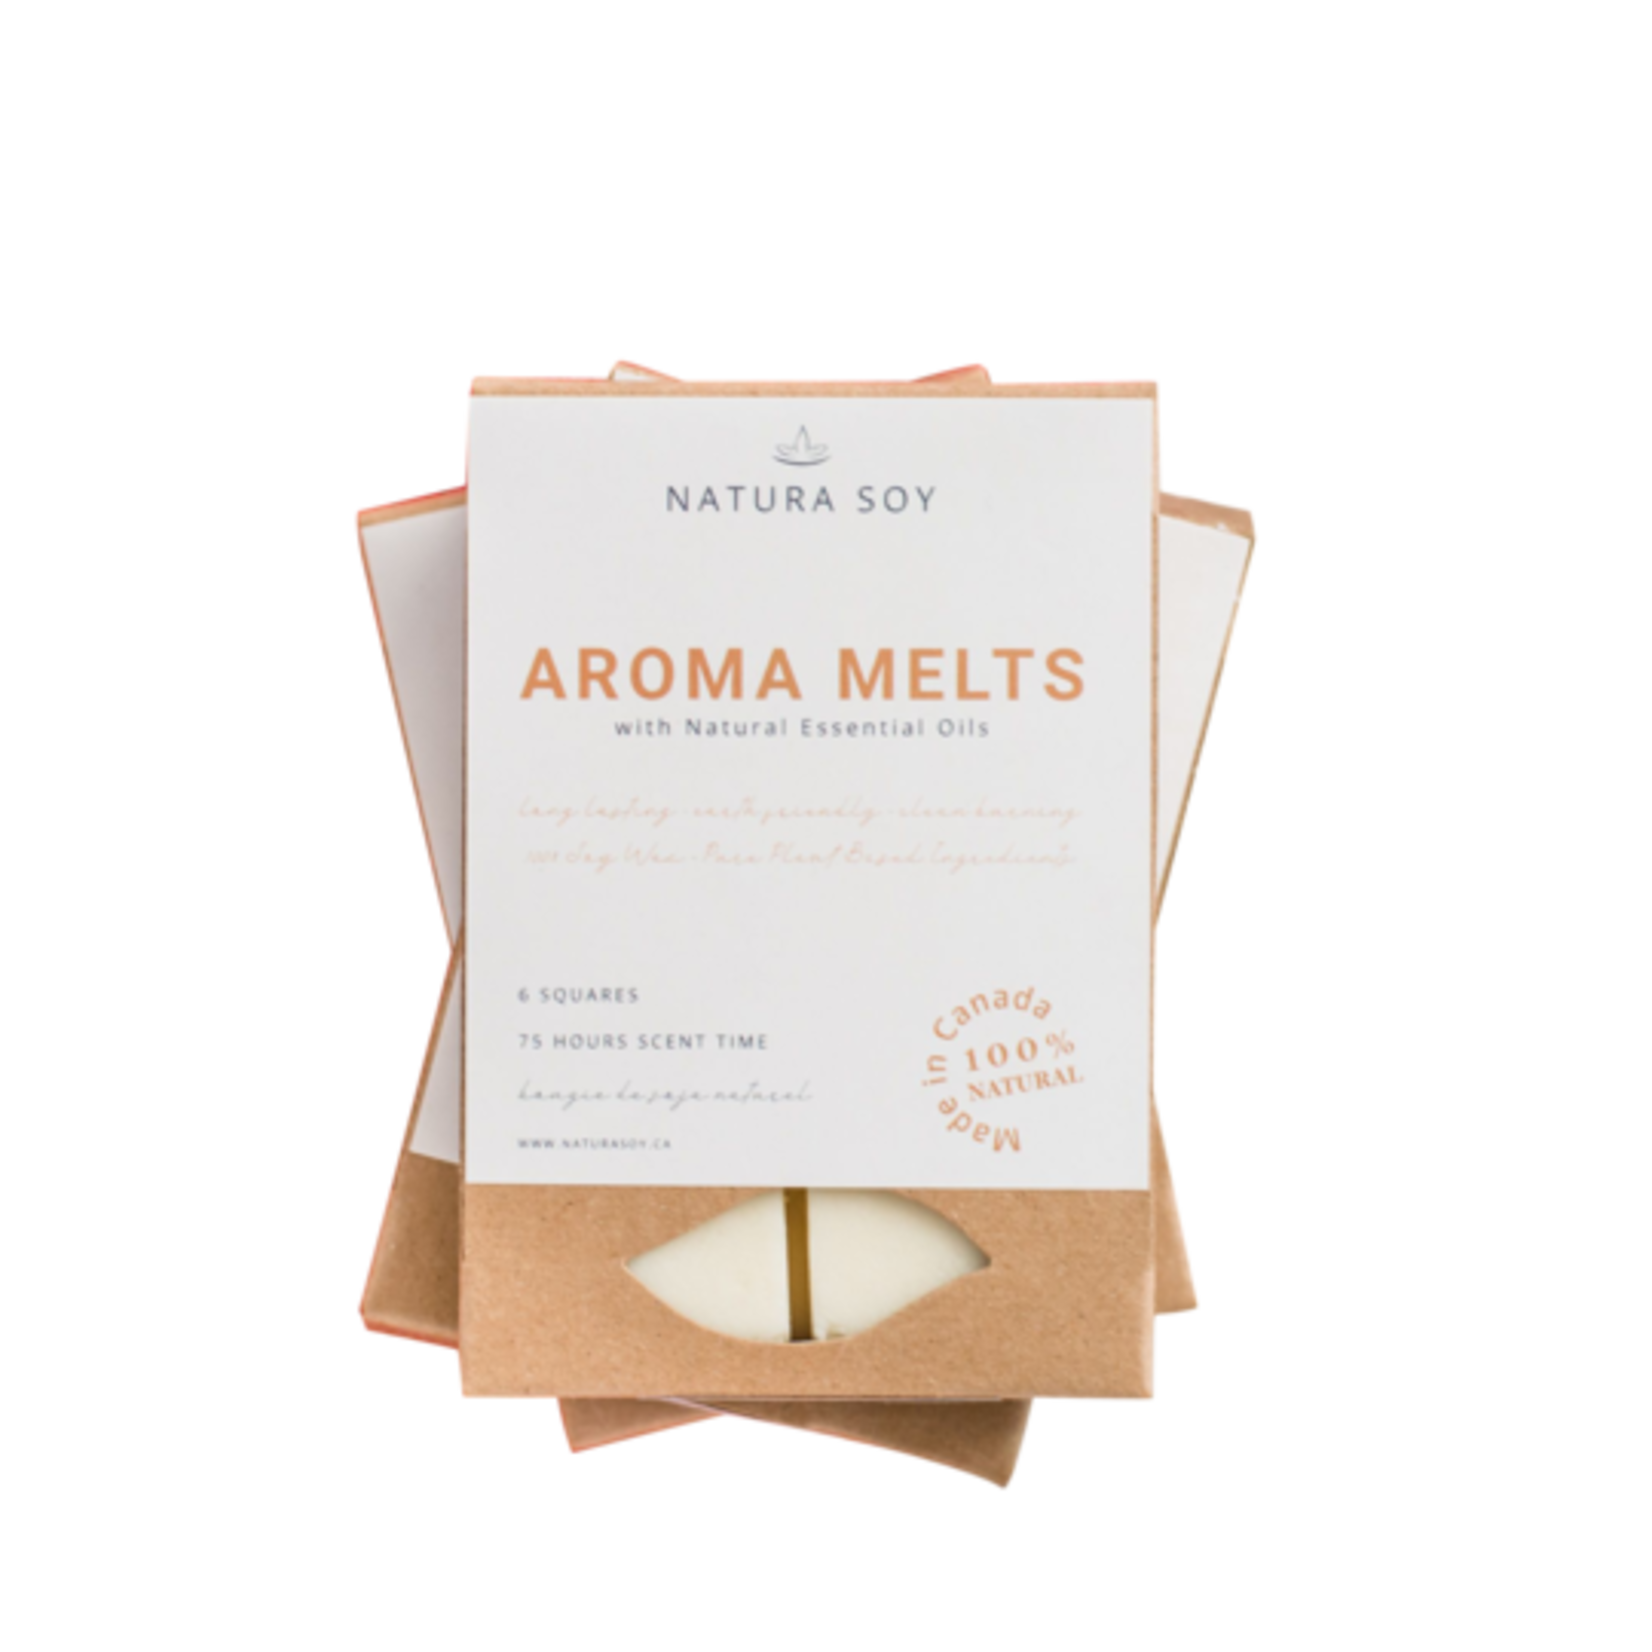 NATURA SOY Aroma Melts Sage Berry